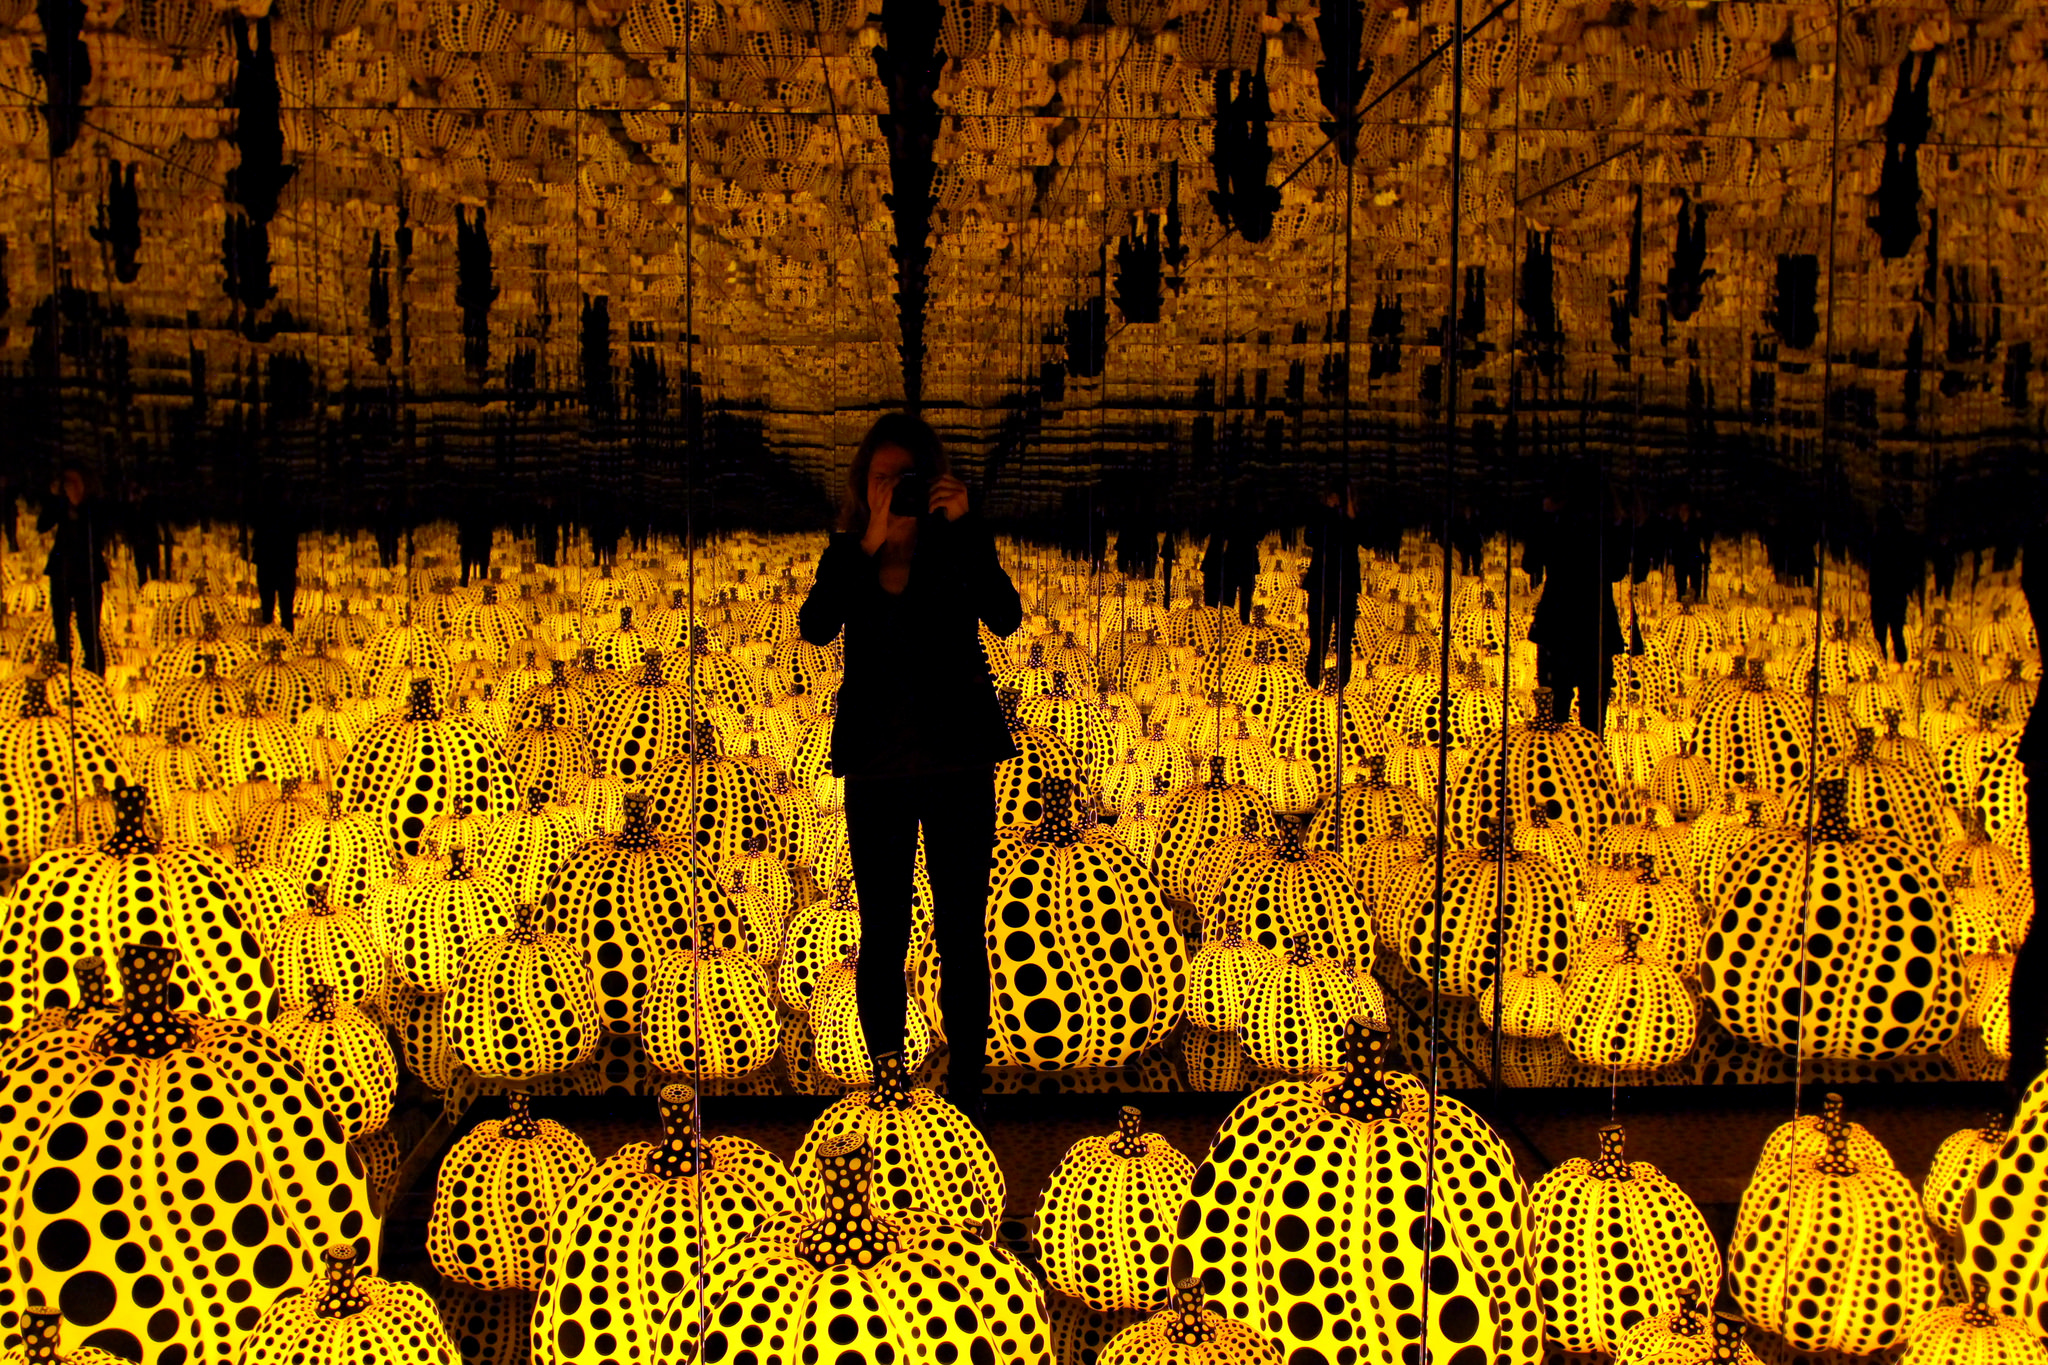 Trapped in the Pumpkins: by Bex Walter (Creative Commons licence: https://creativecommons.org/licenses/by/2.0/)